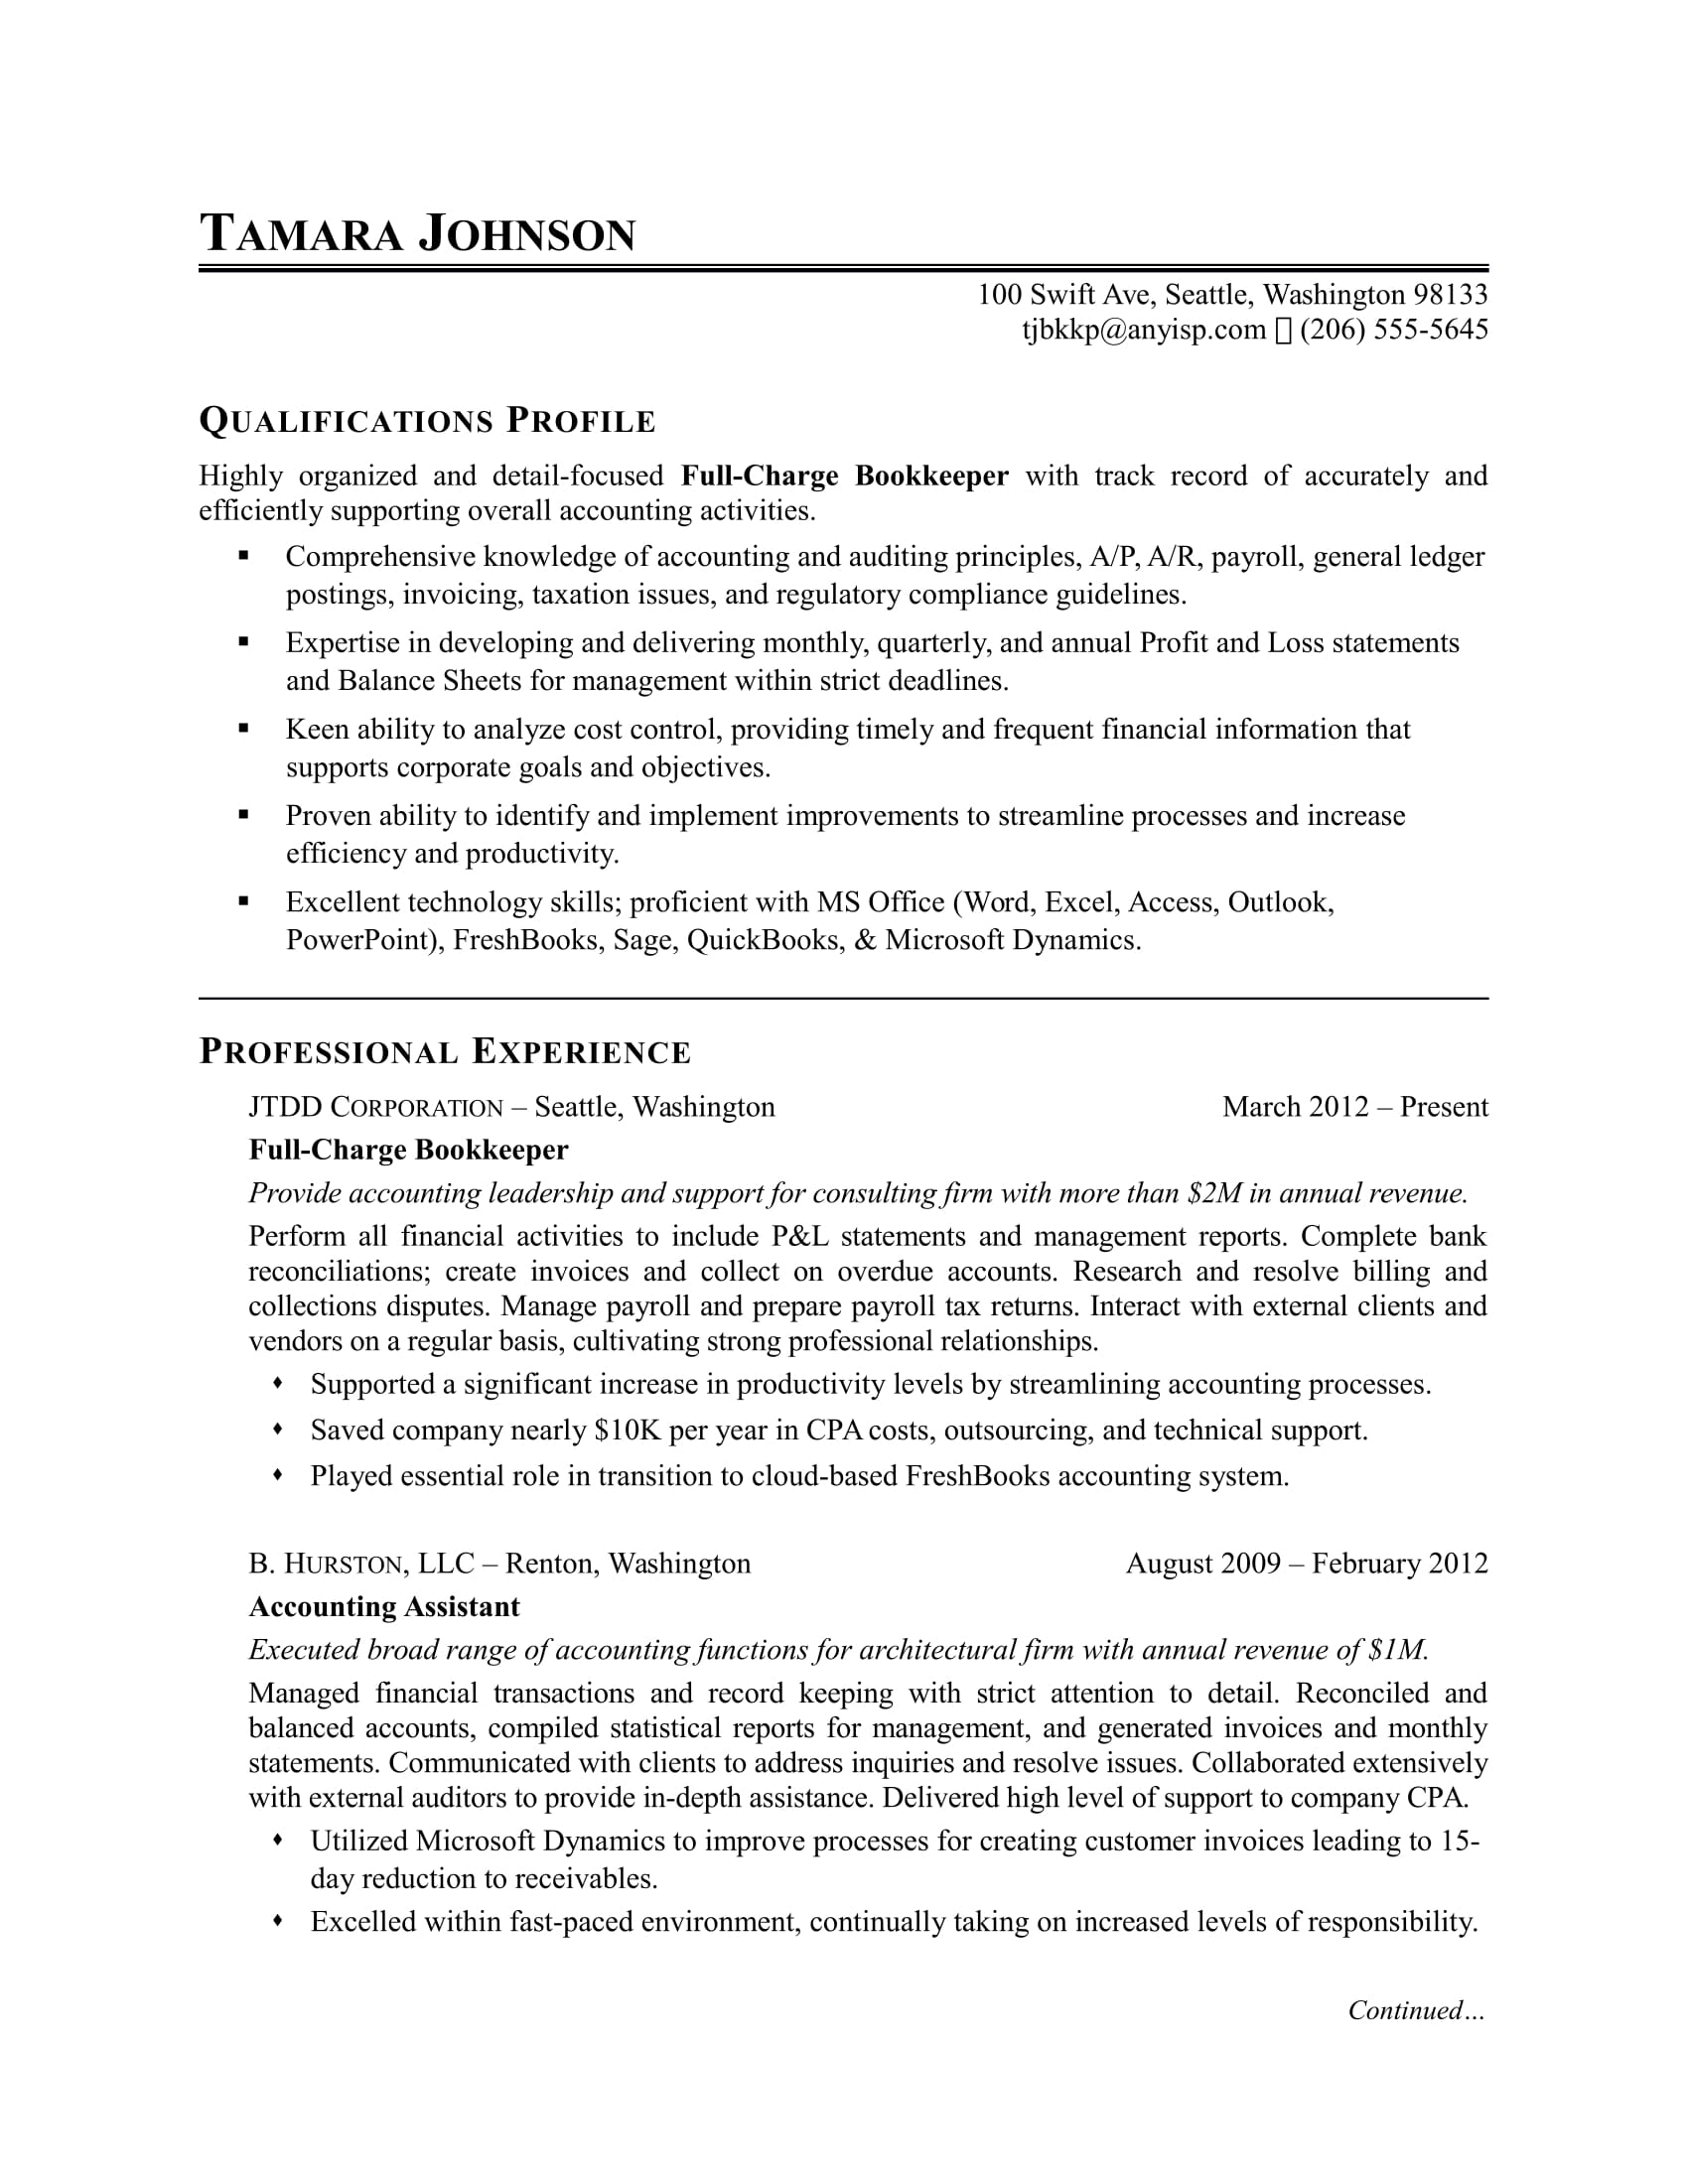 Bookkeeper Resume Sample   Monster